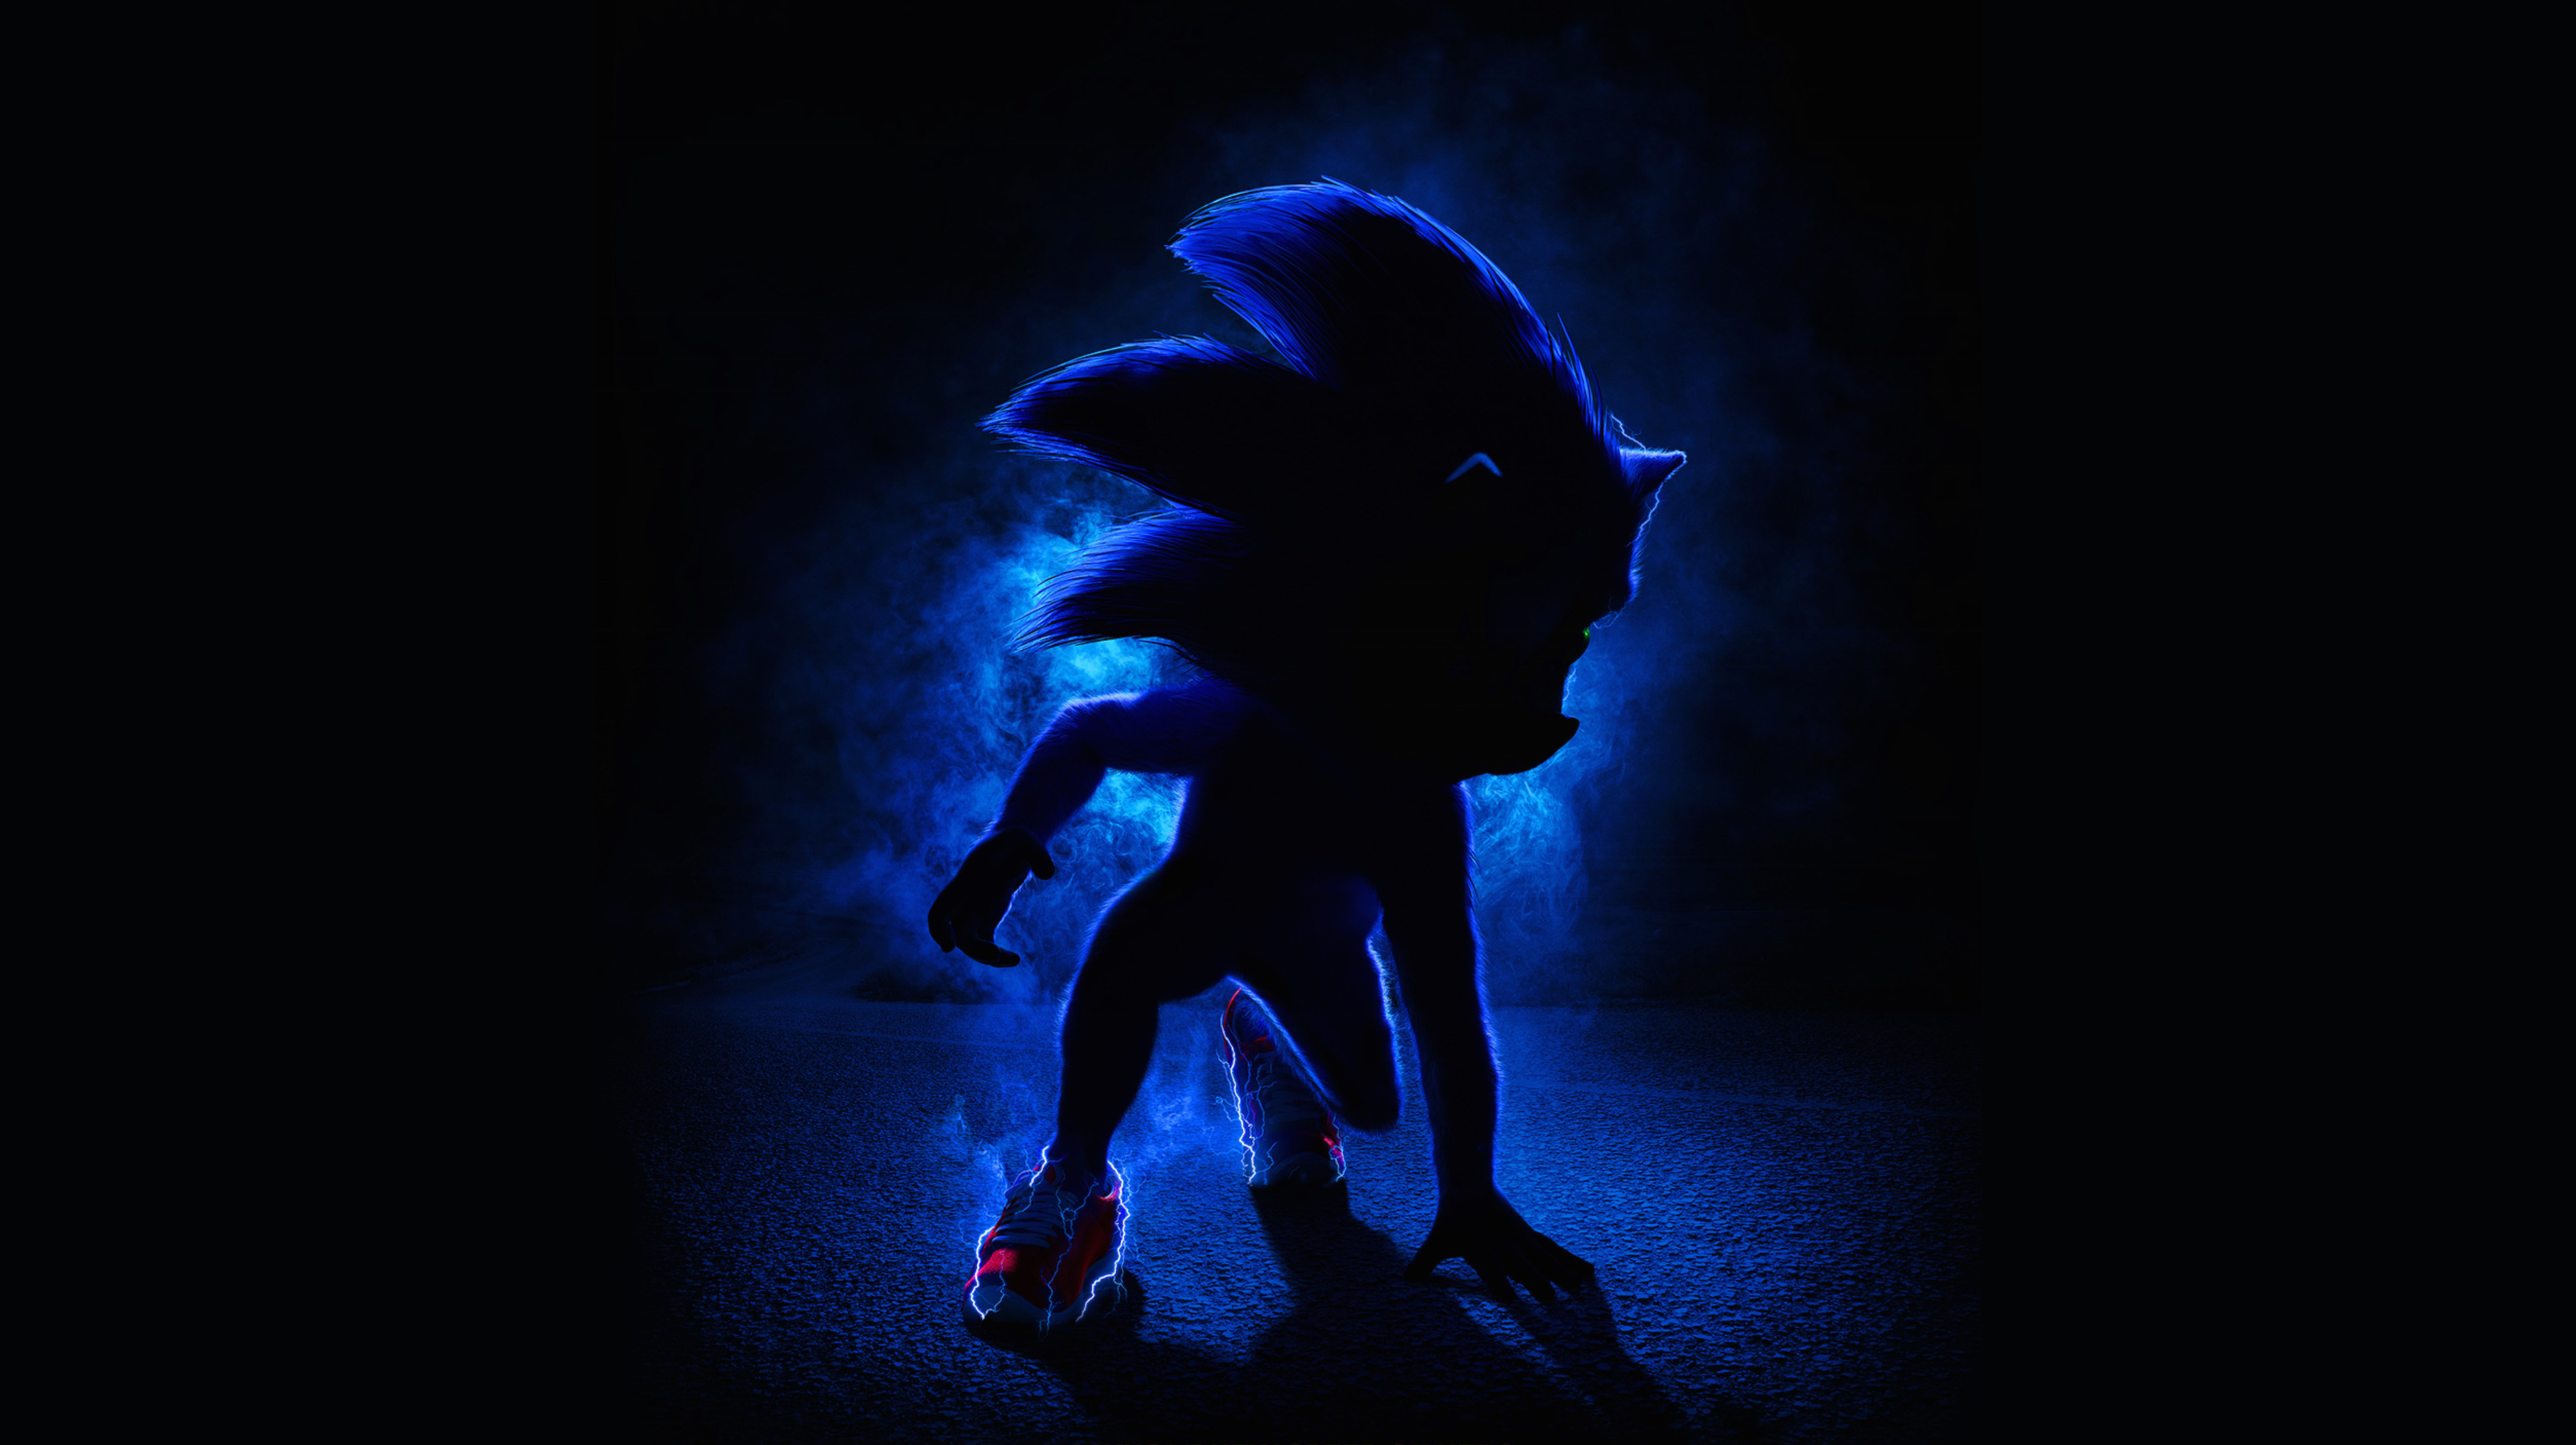 Sonic The Hedgehog 2019 Movie Poster Wallpaper Hd Movies 4k Wallpapers Images Photos And Background